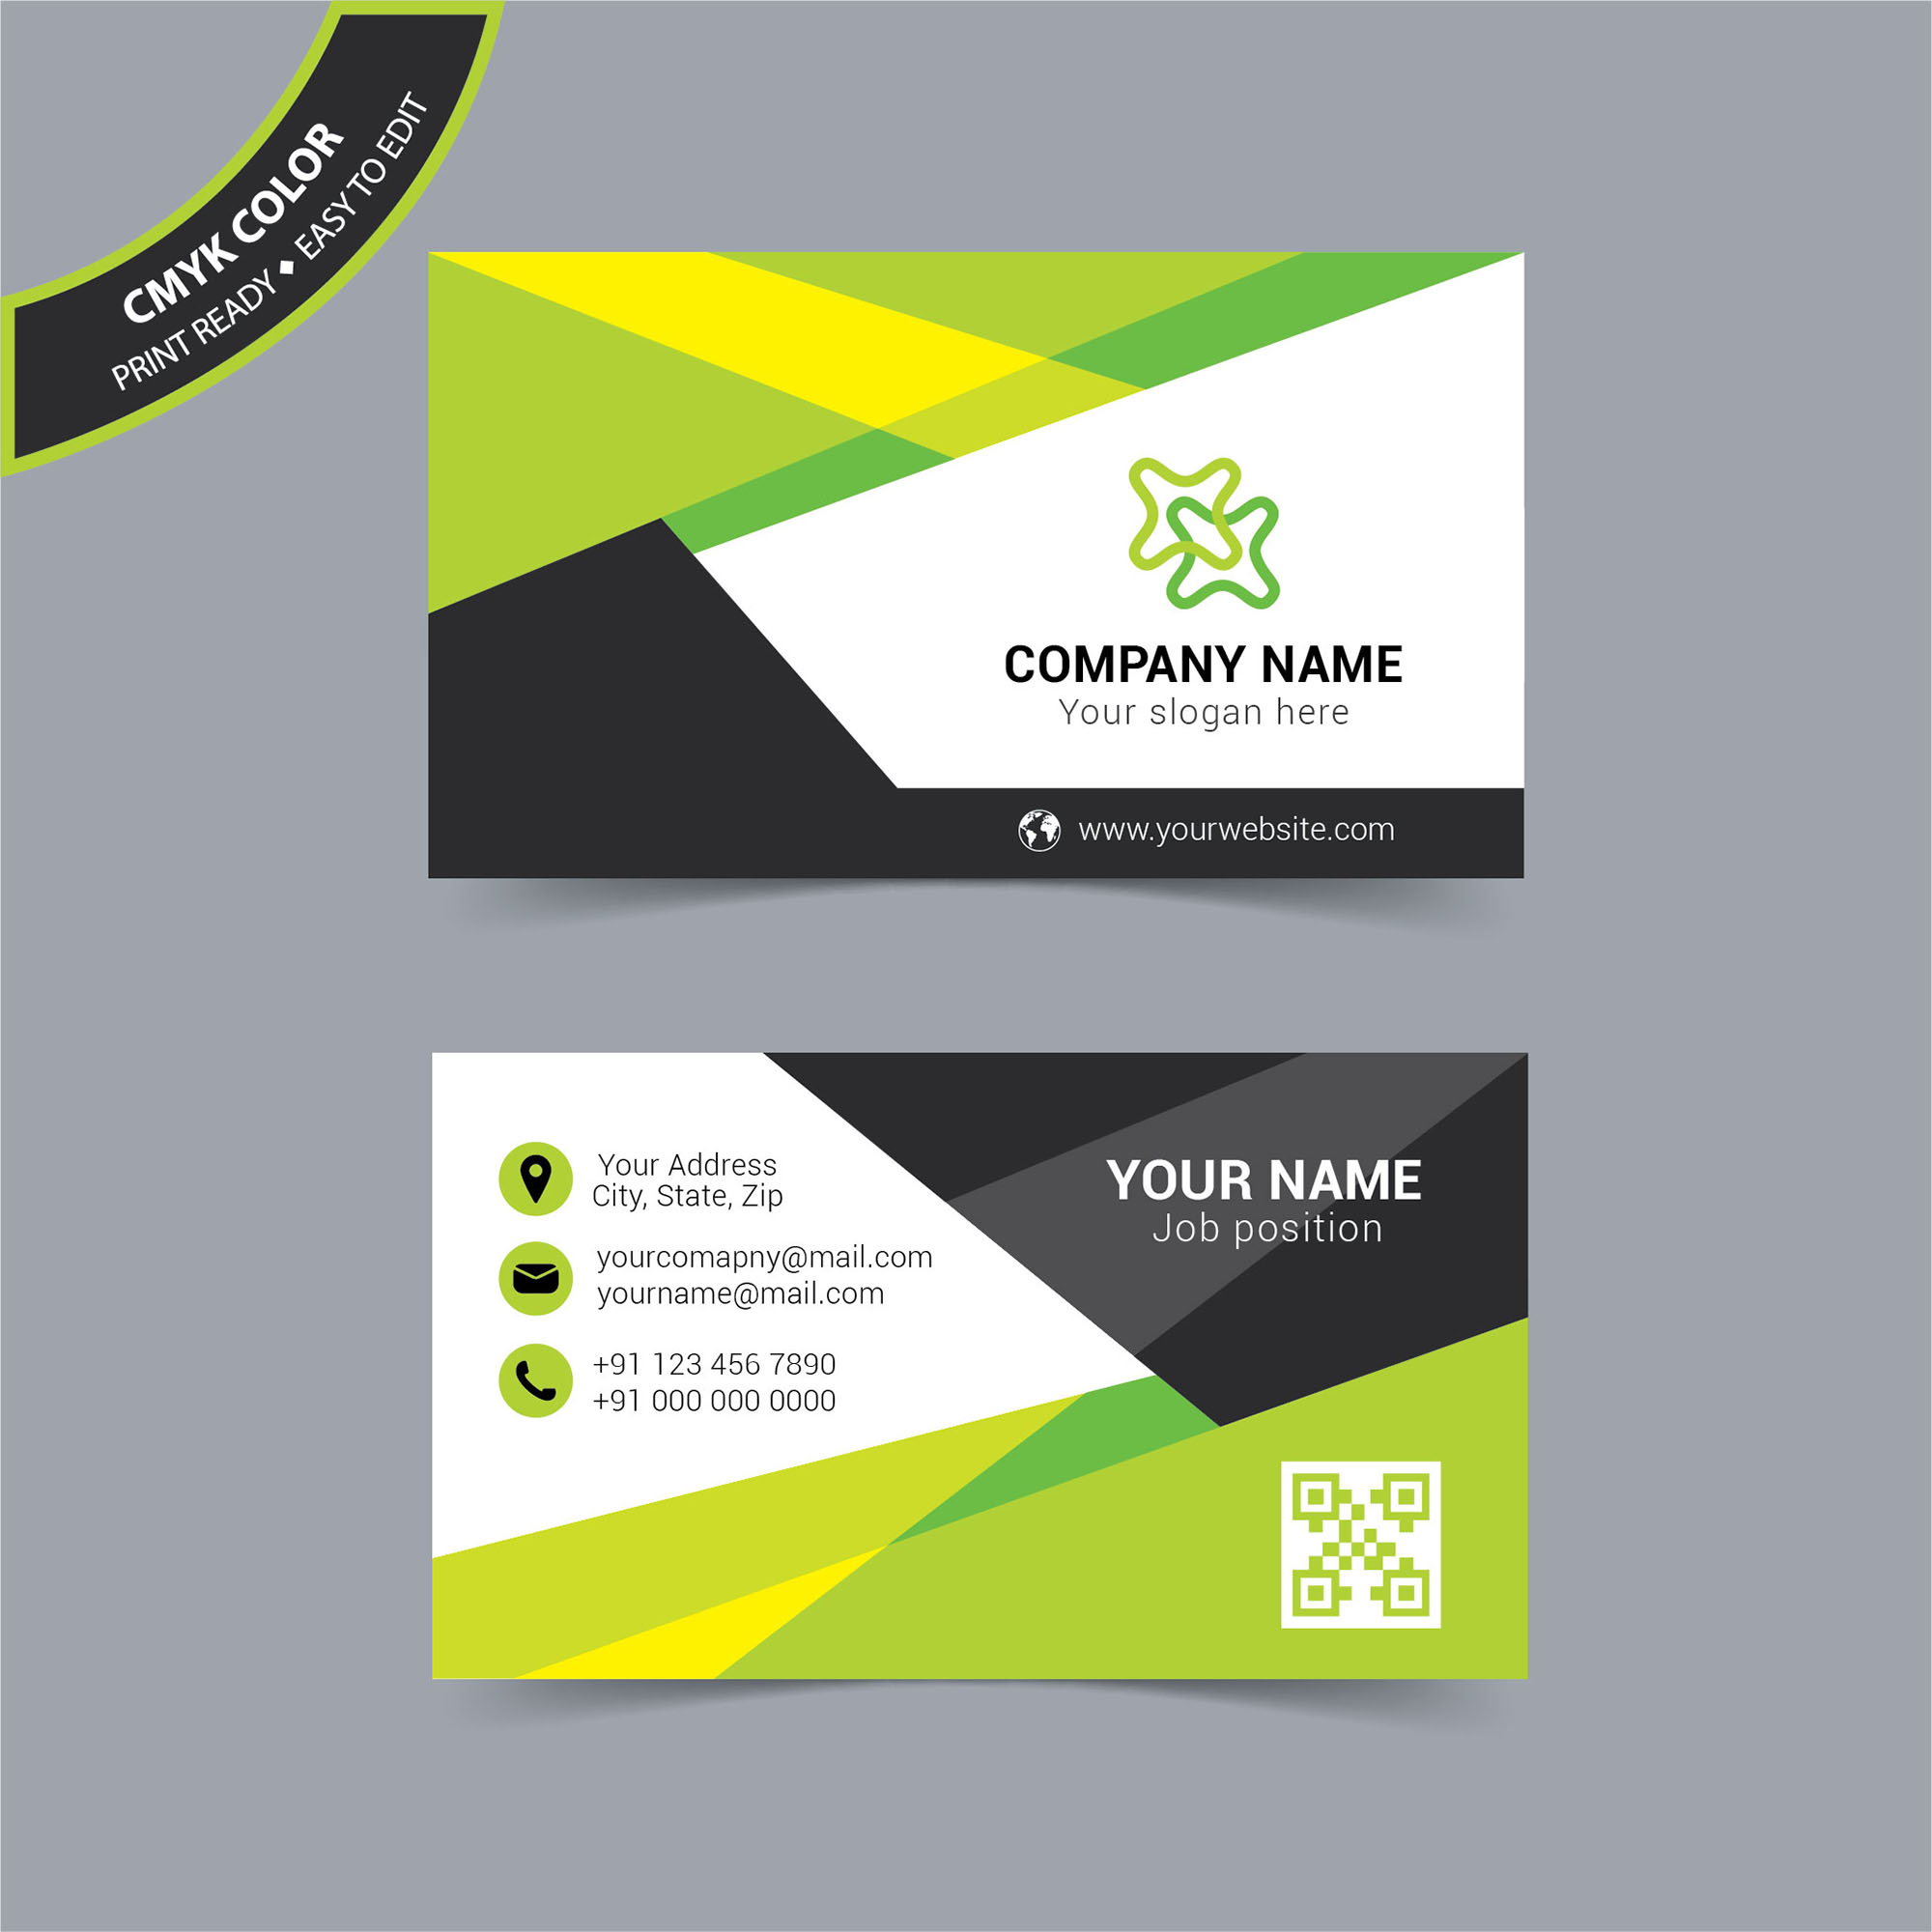 Modern colorful business card design free download wisxi business card business cards business card design business card template design templates wajeb Choice Image